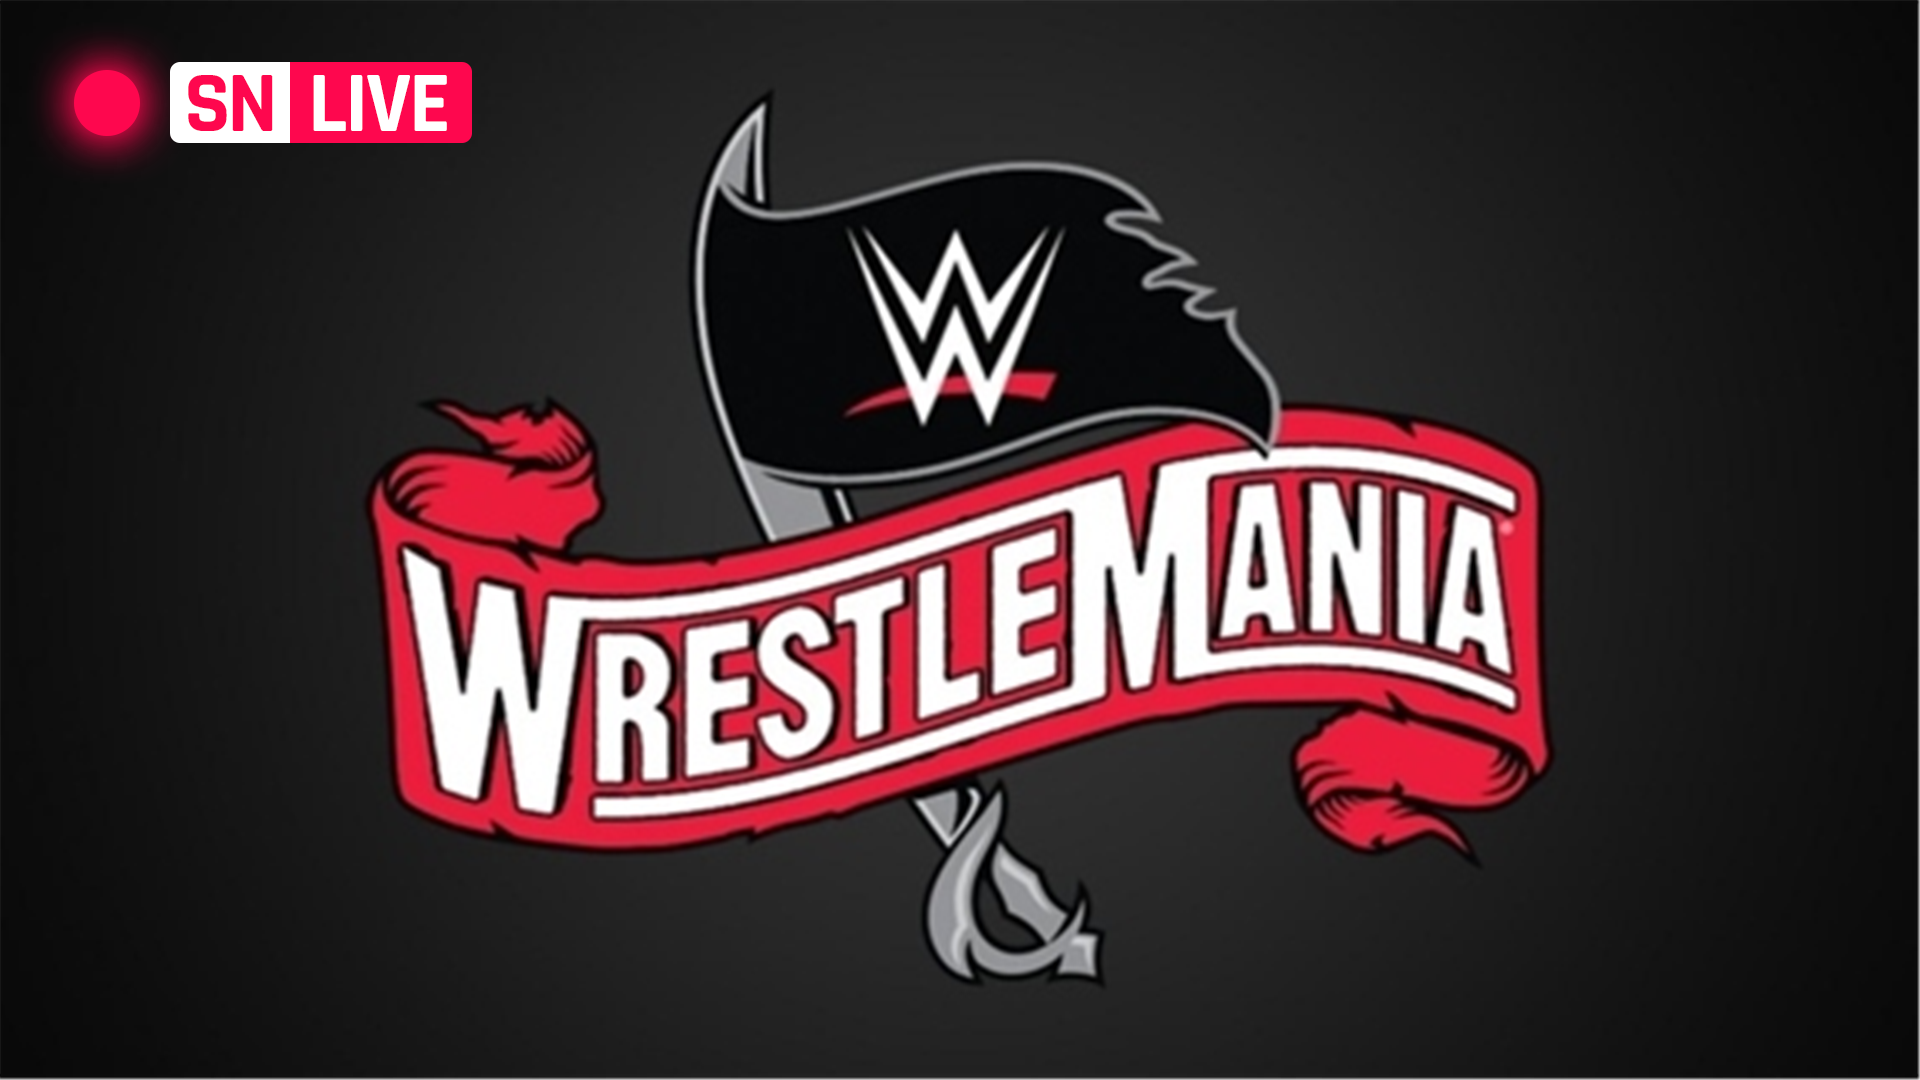 WrestleMania 36 live updates, results & highlights from every match on Night 1 - sporting news